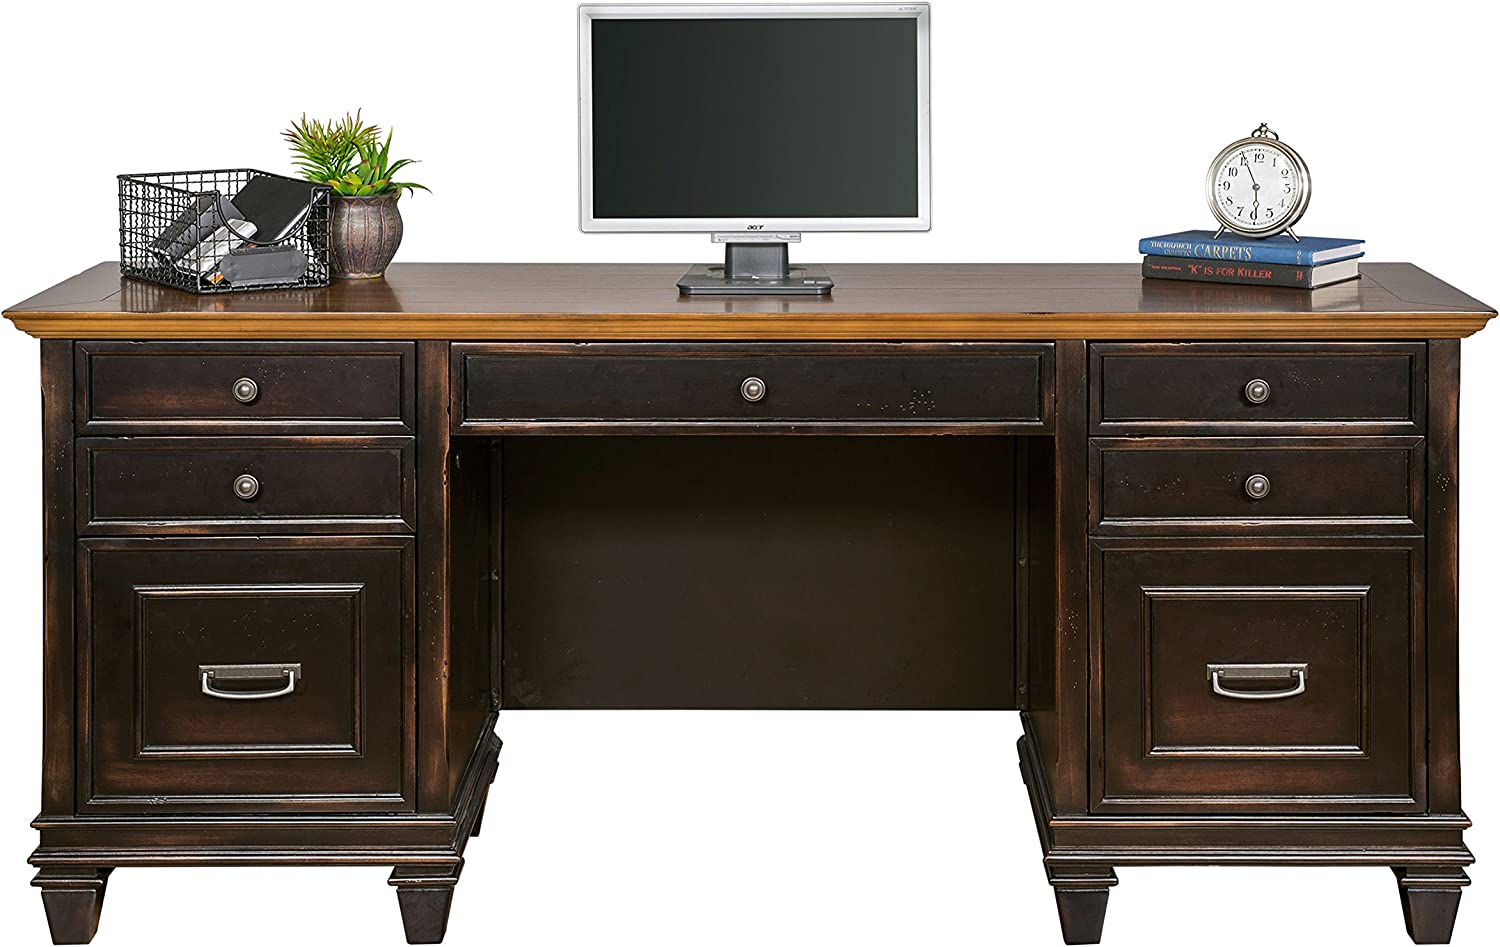 Martin Furniture Max 47% OFF Hartford Credenza All items free shipping Brown Assembled - Fully